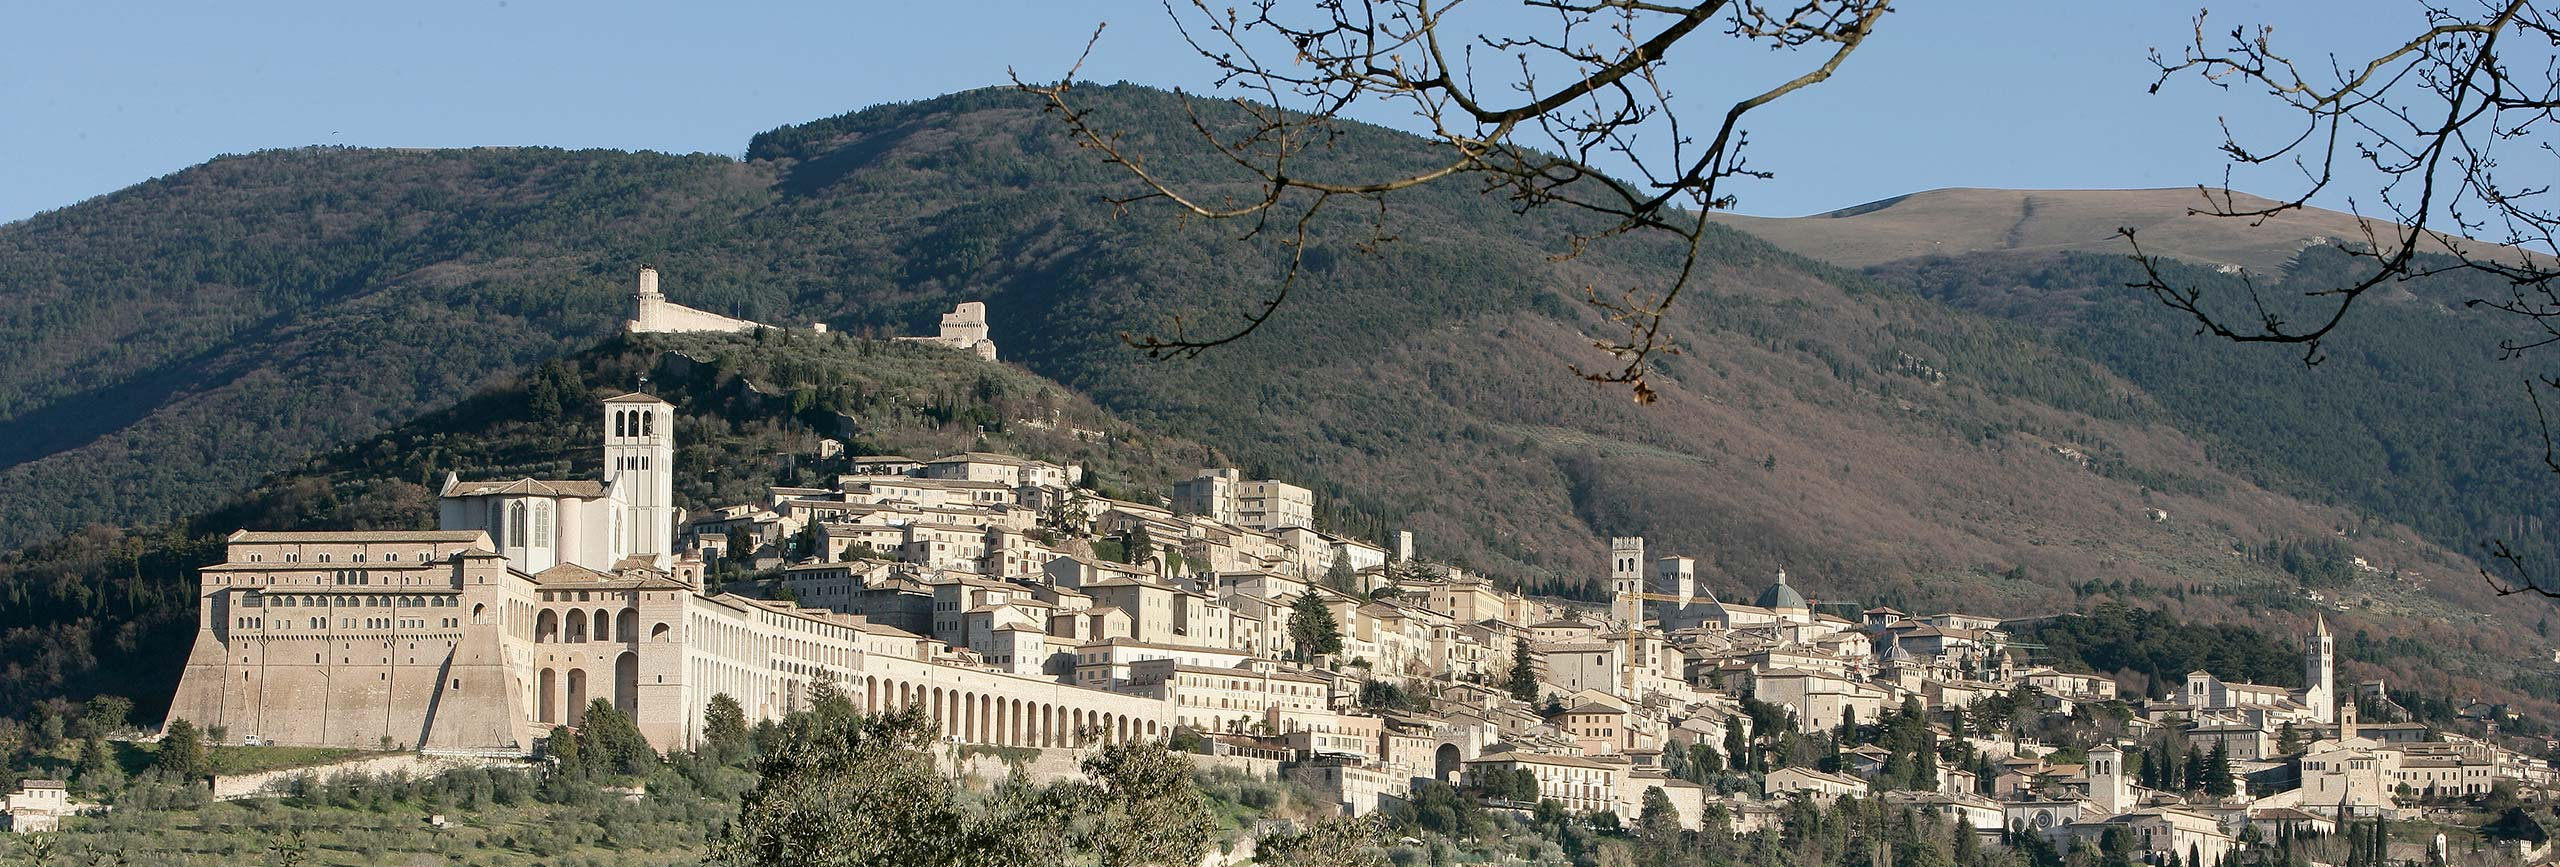 Slide1-Panorama-Assisi